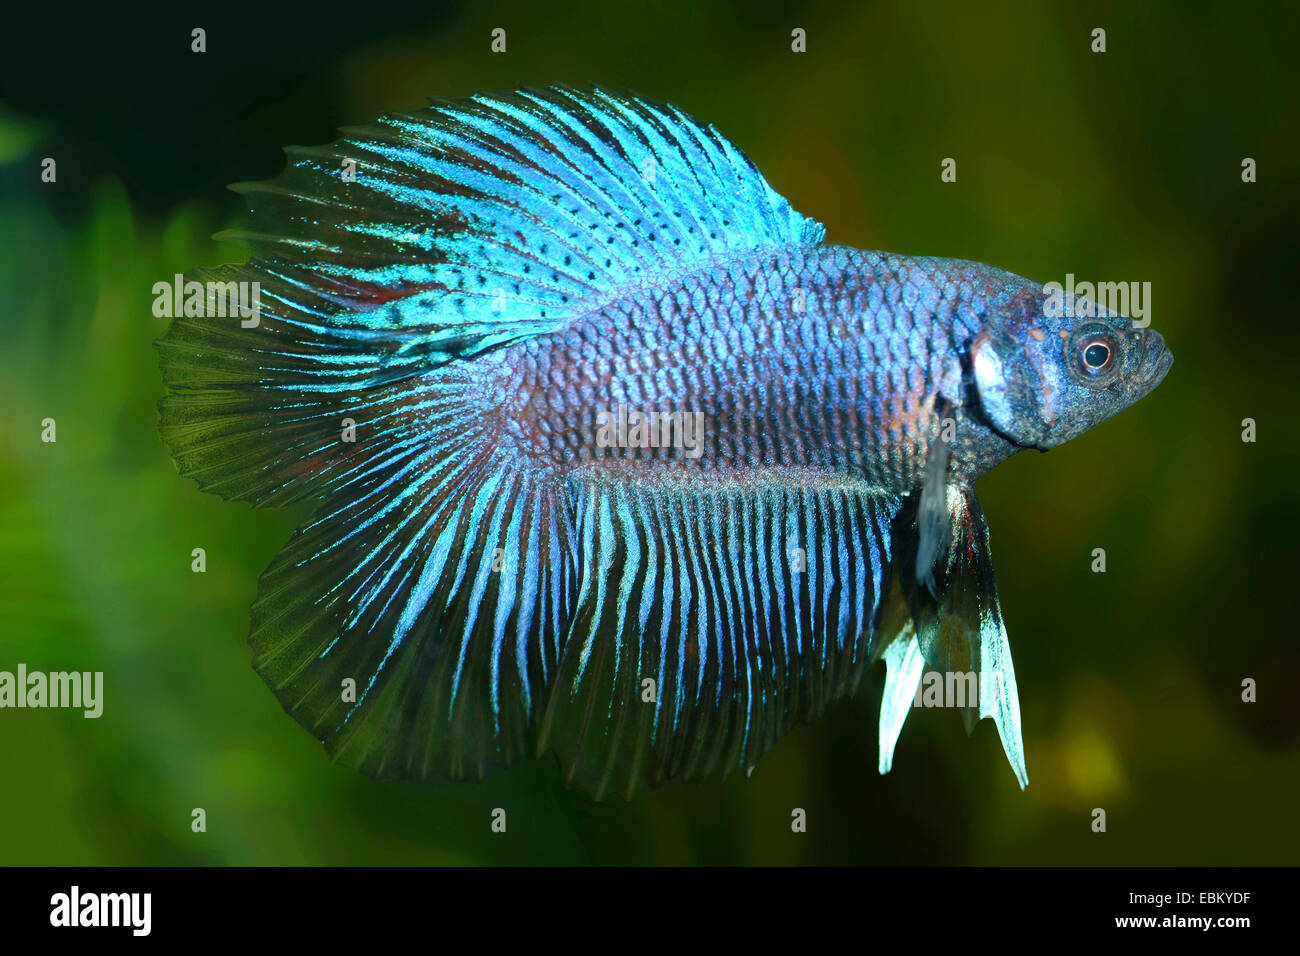 Siamese fighting fish, Siamese fighter (Betta splendens), breed Erfurter Blau - Stock Image